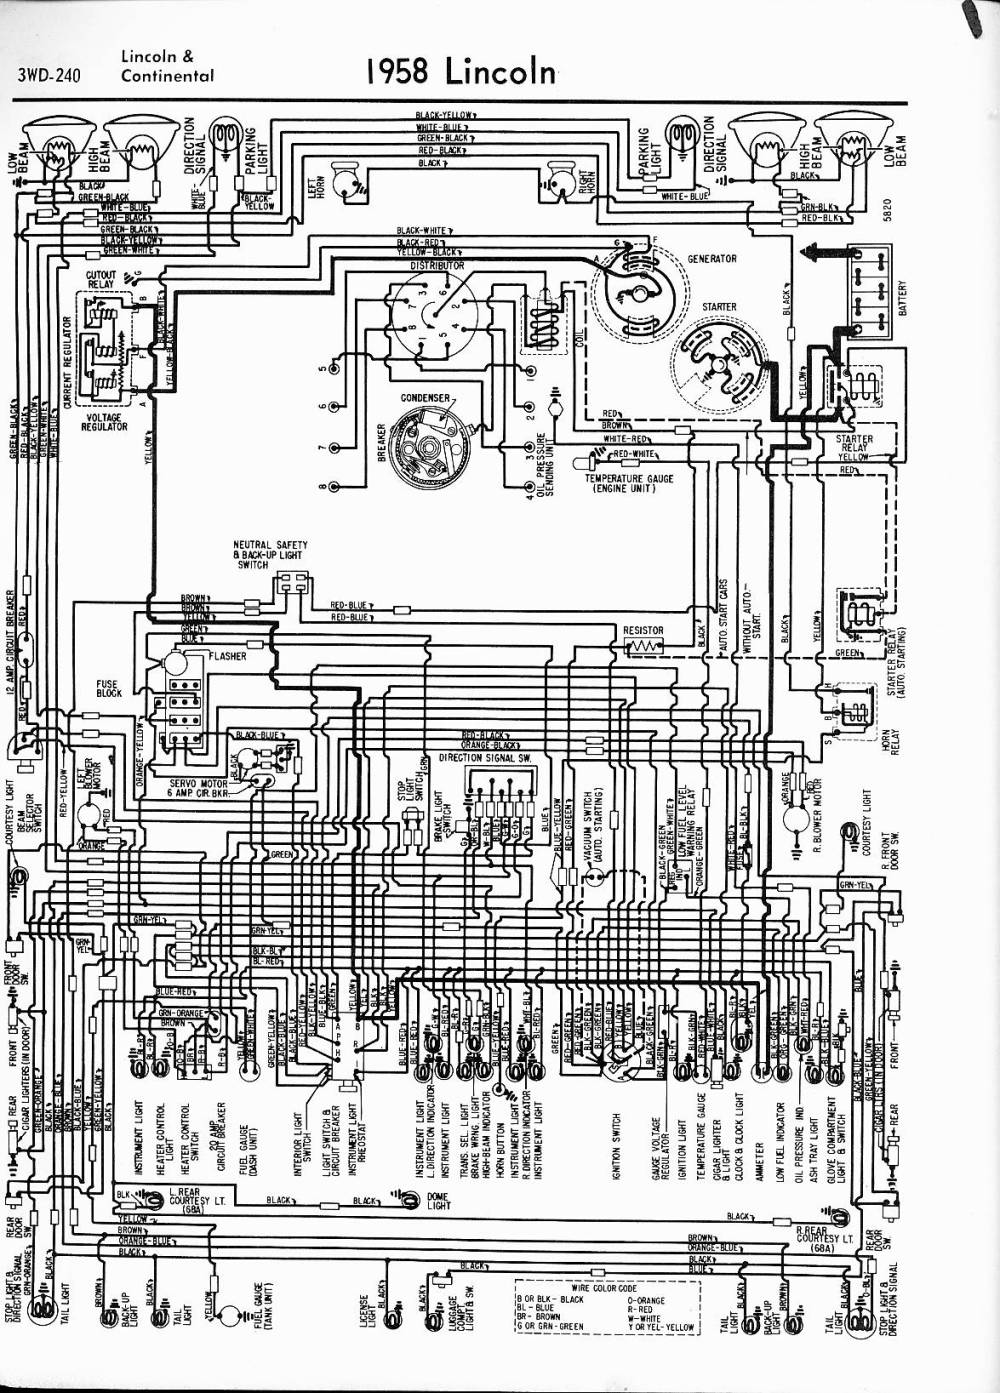 medium resolution of 62 lincoln wiring diagram wiring diagrams scematic 1996 saab 9000 wiring diagram 1963 lincoln continental wiring diagram